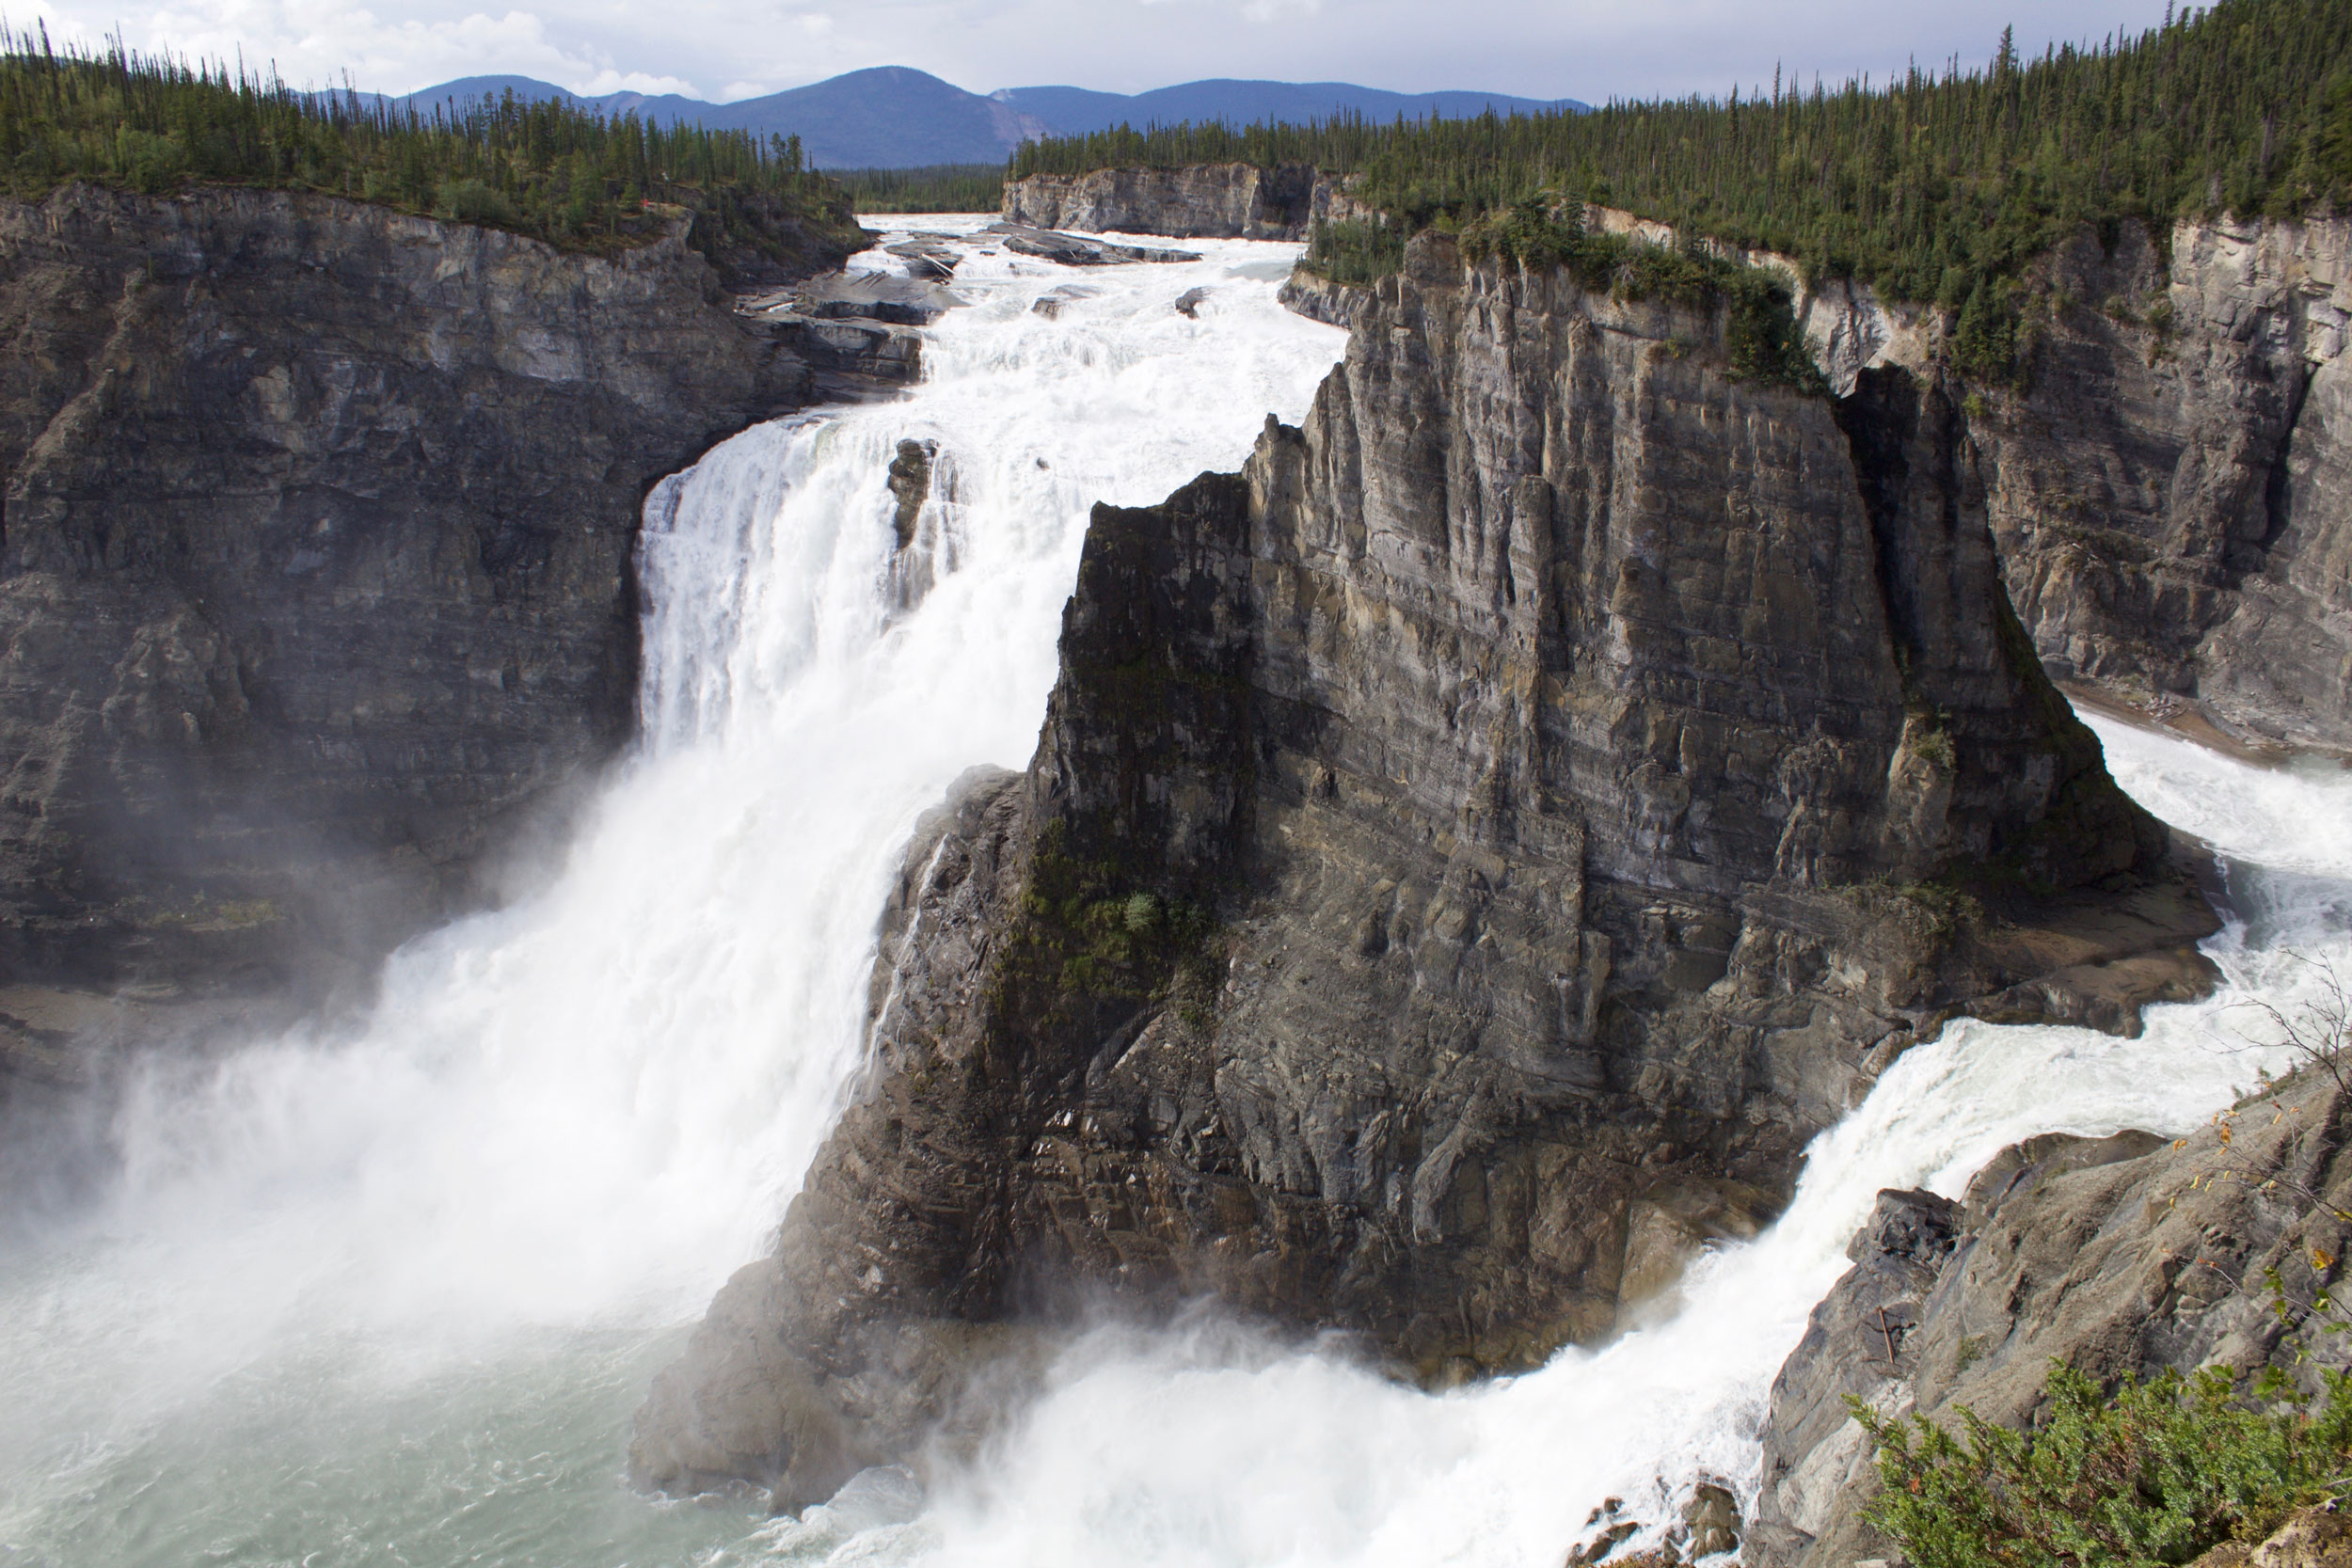 The adventure of a lifetime awaits you in Canada's wildest National Park    Experience true wilderness adventure with Nahanni Wild